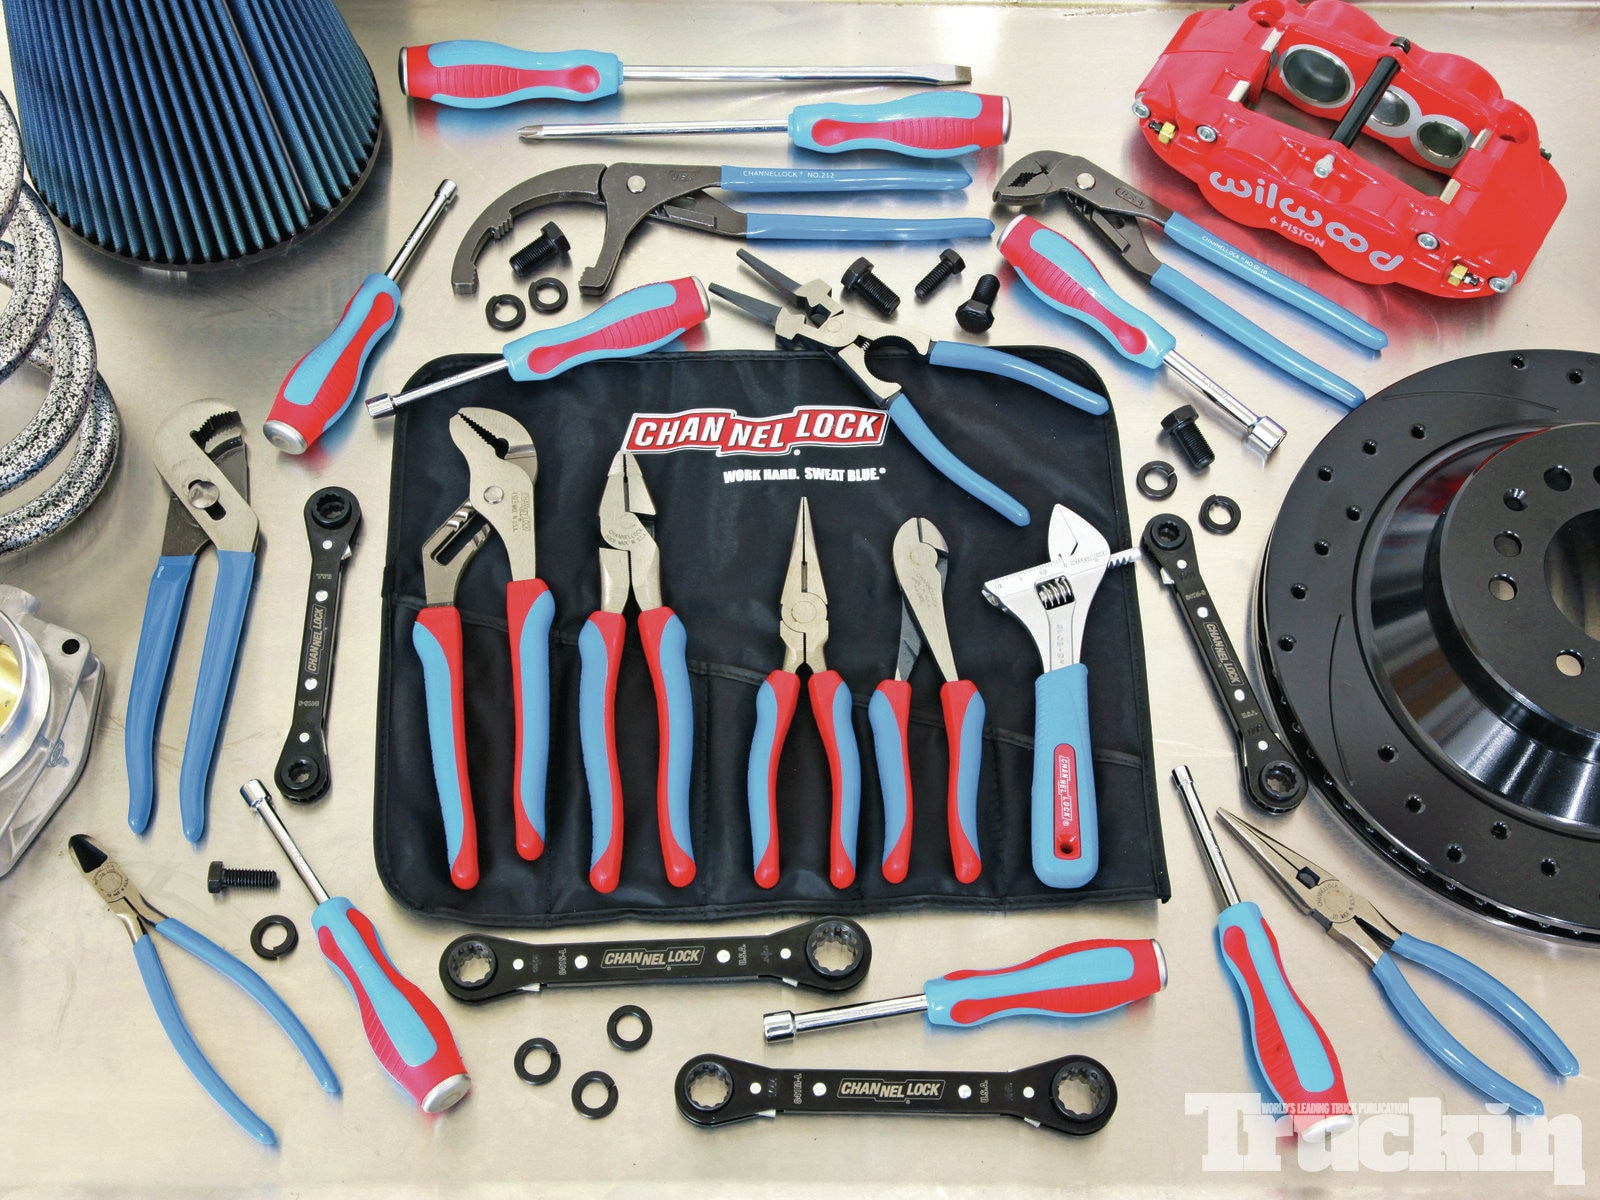 Channellock Pliers, Drivers And Wrenches